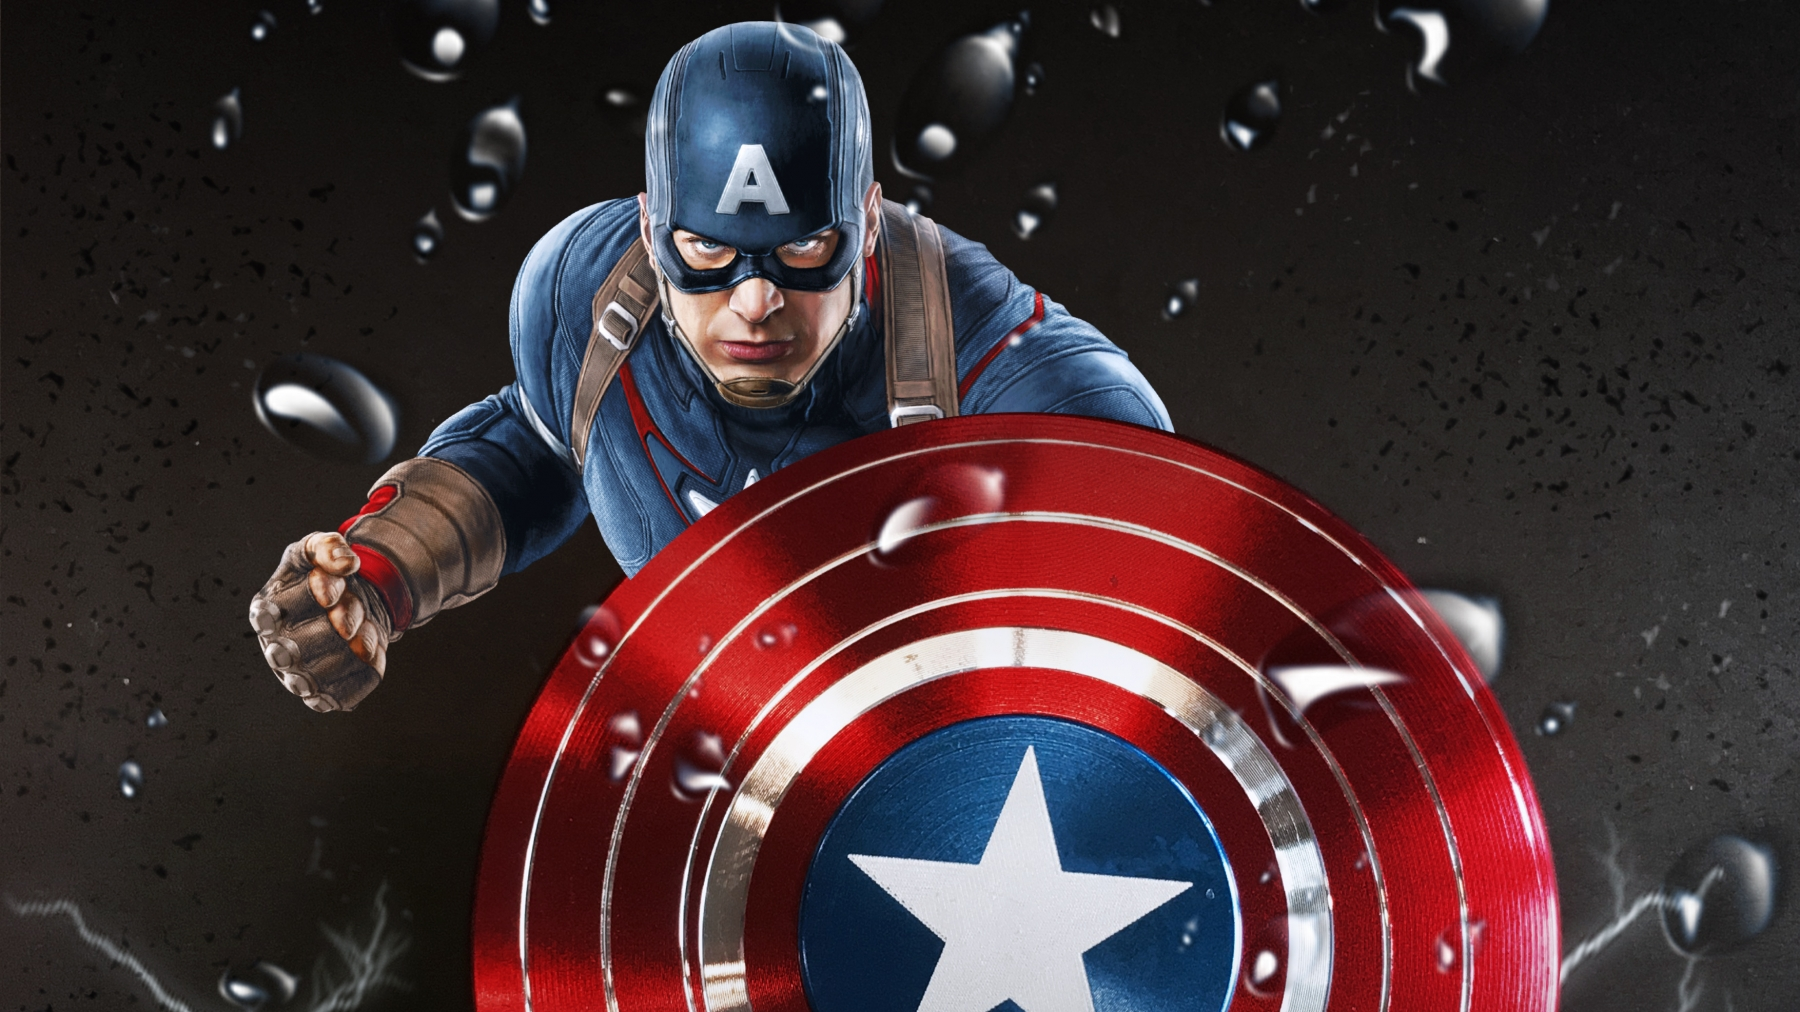 Captain america hd wallpapers and background images yl - Fondos de pantalla 3d avengers ...